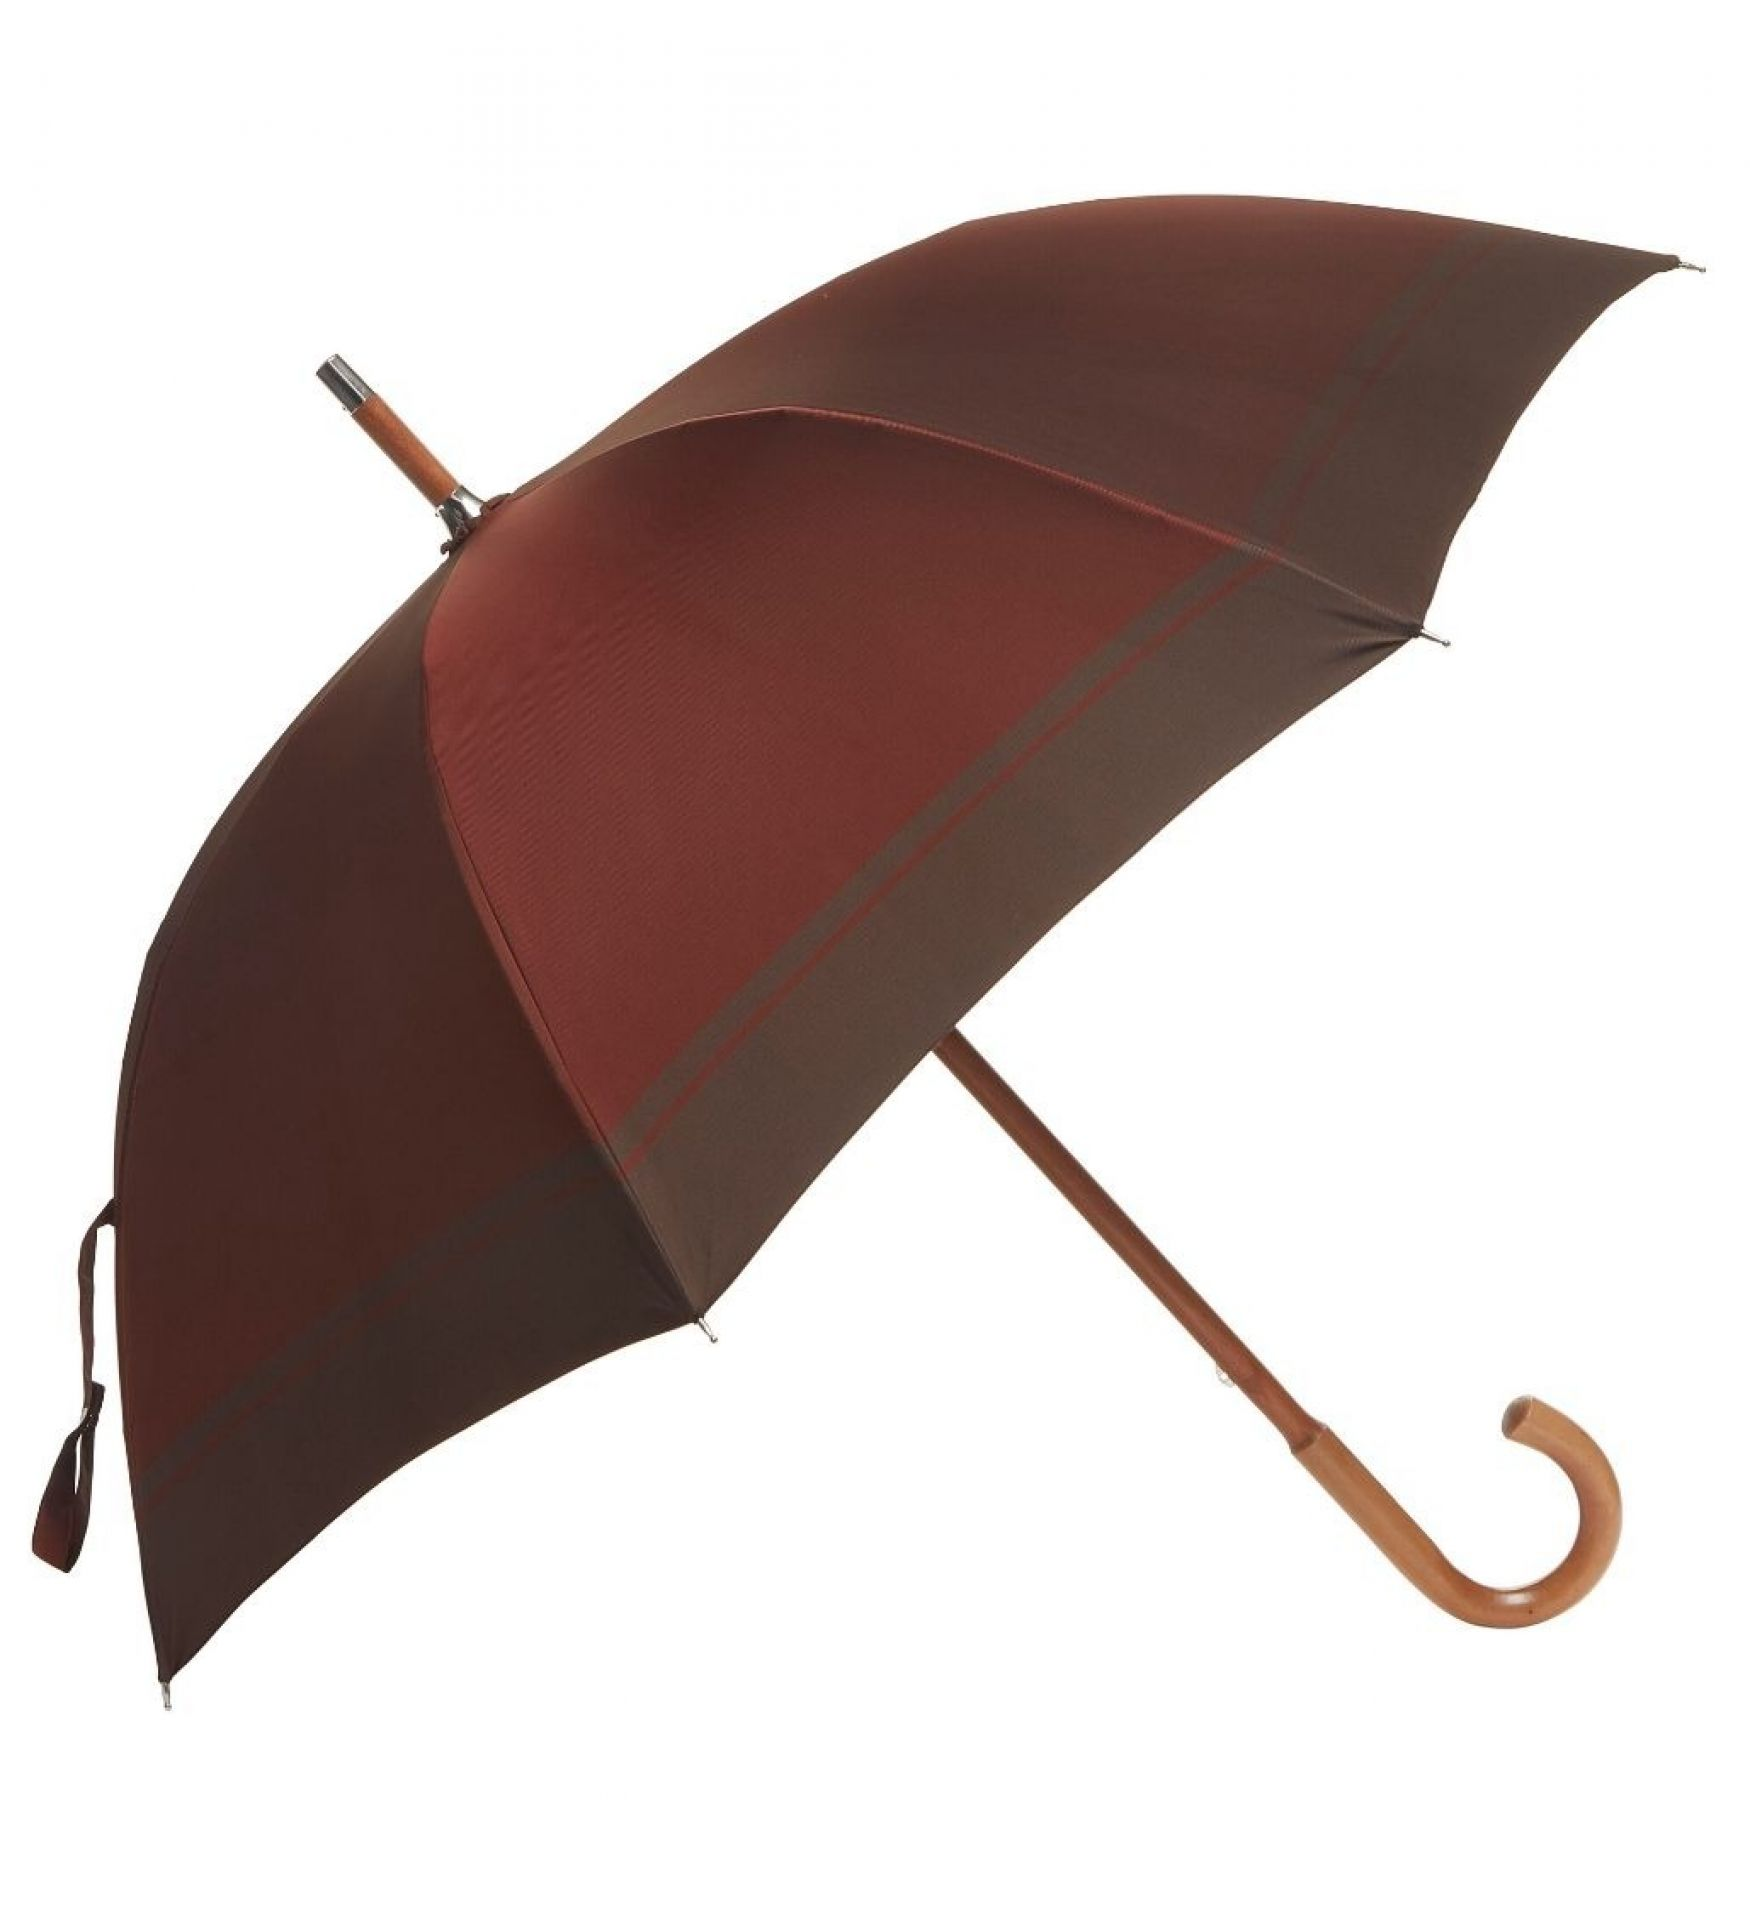 Loro Piana One-Piece Malacca Wood Umbrella with Brown Maroon Canopy